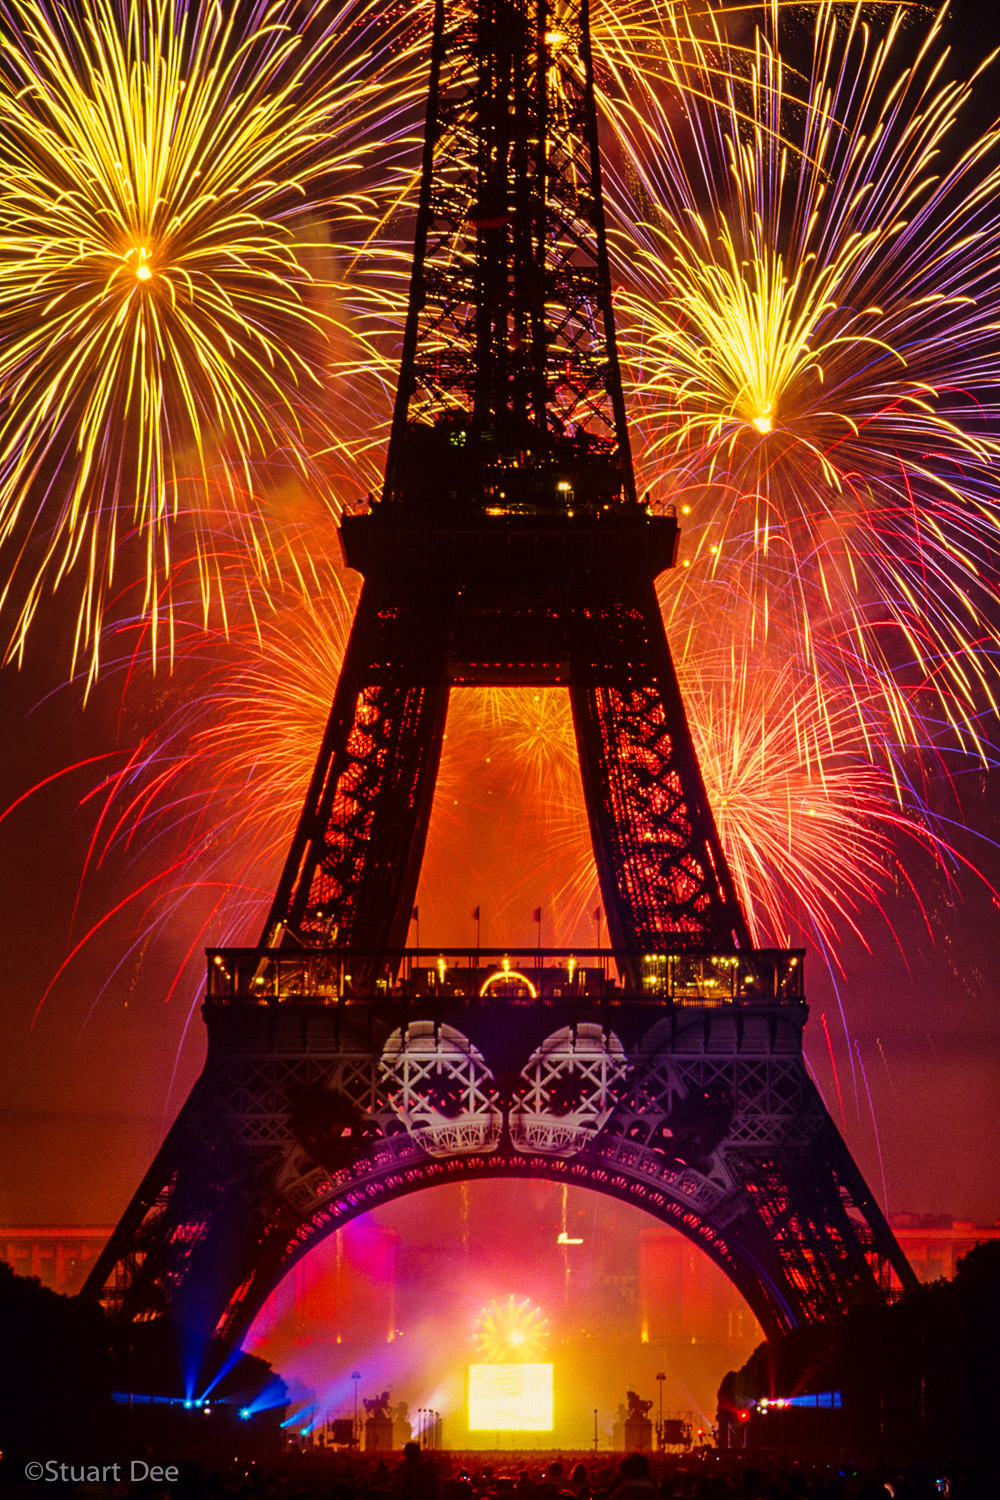 Eiffel Tower with Fireworks on Bastille Day, Paris, France